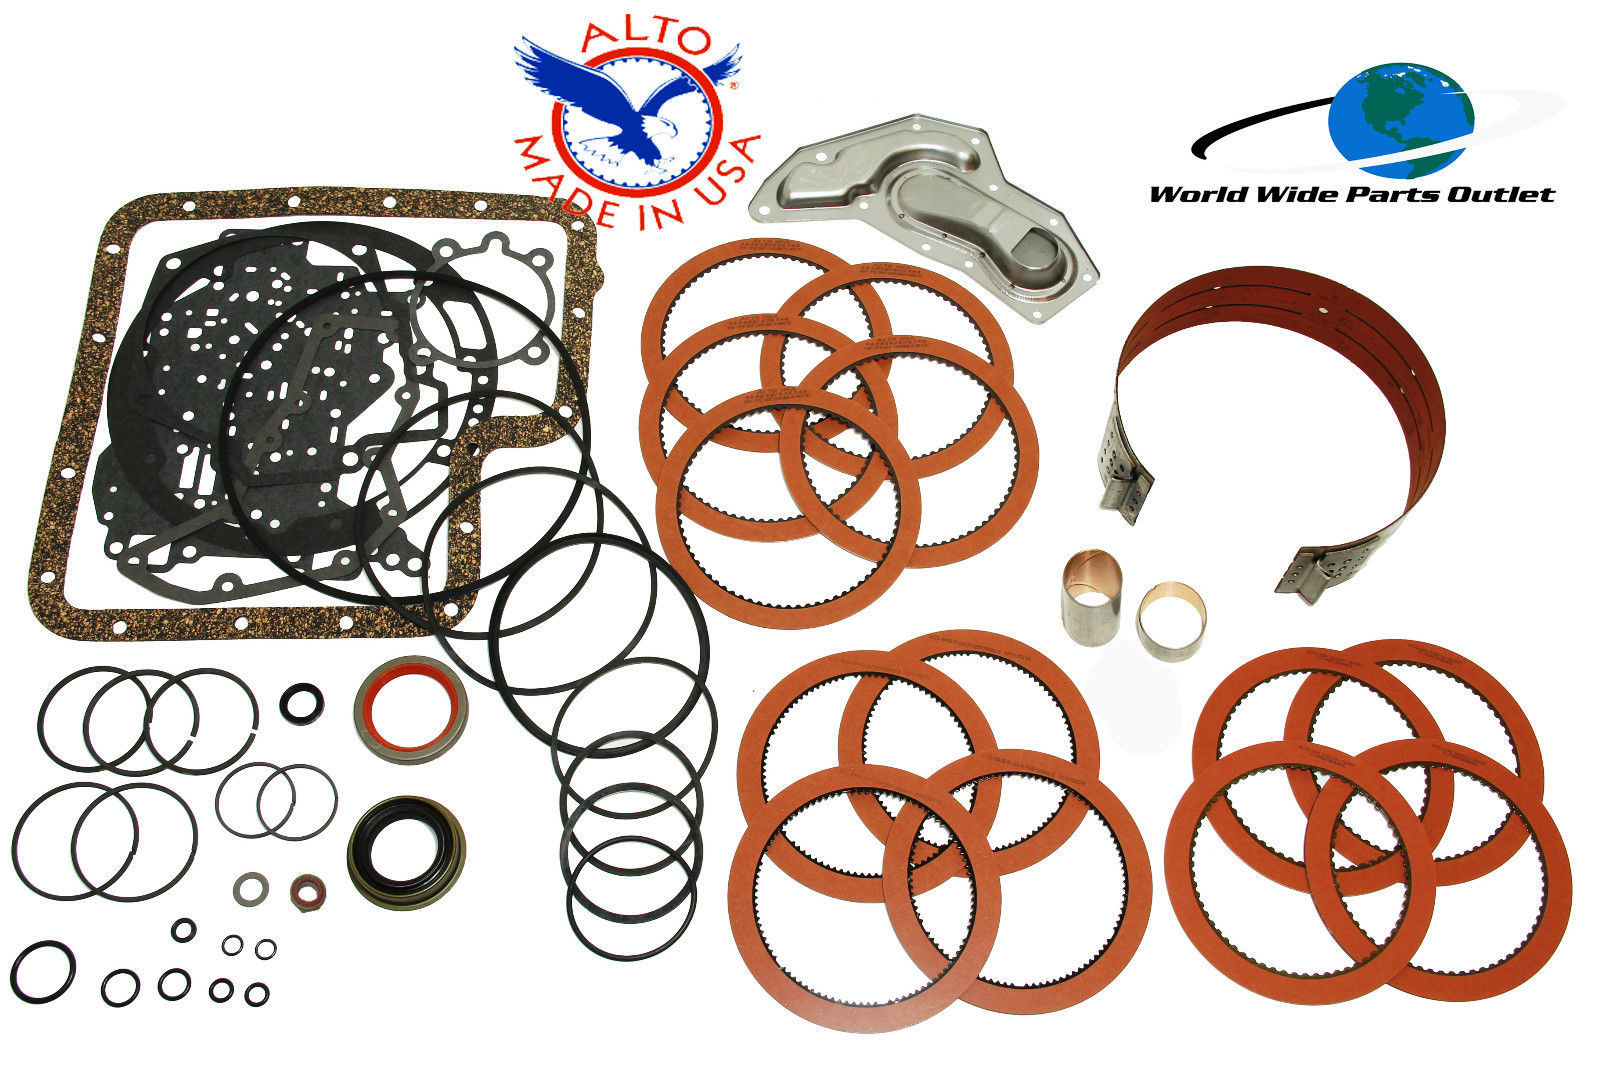 Ford C6 Rebuild Kit High Performance LS Kit Stage 2 Alto Red 1976-1996 - $140.33